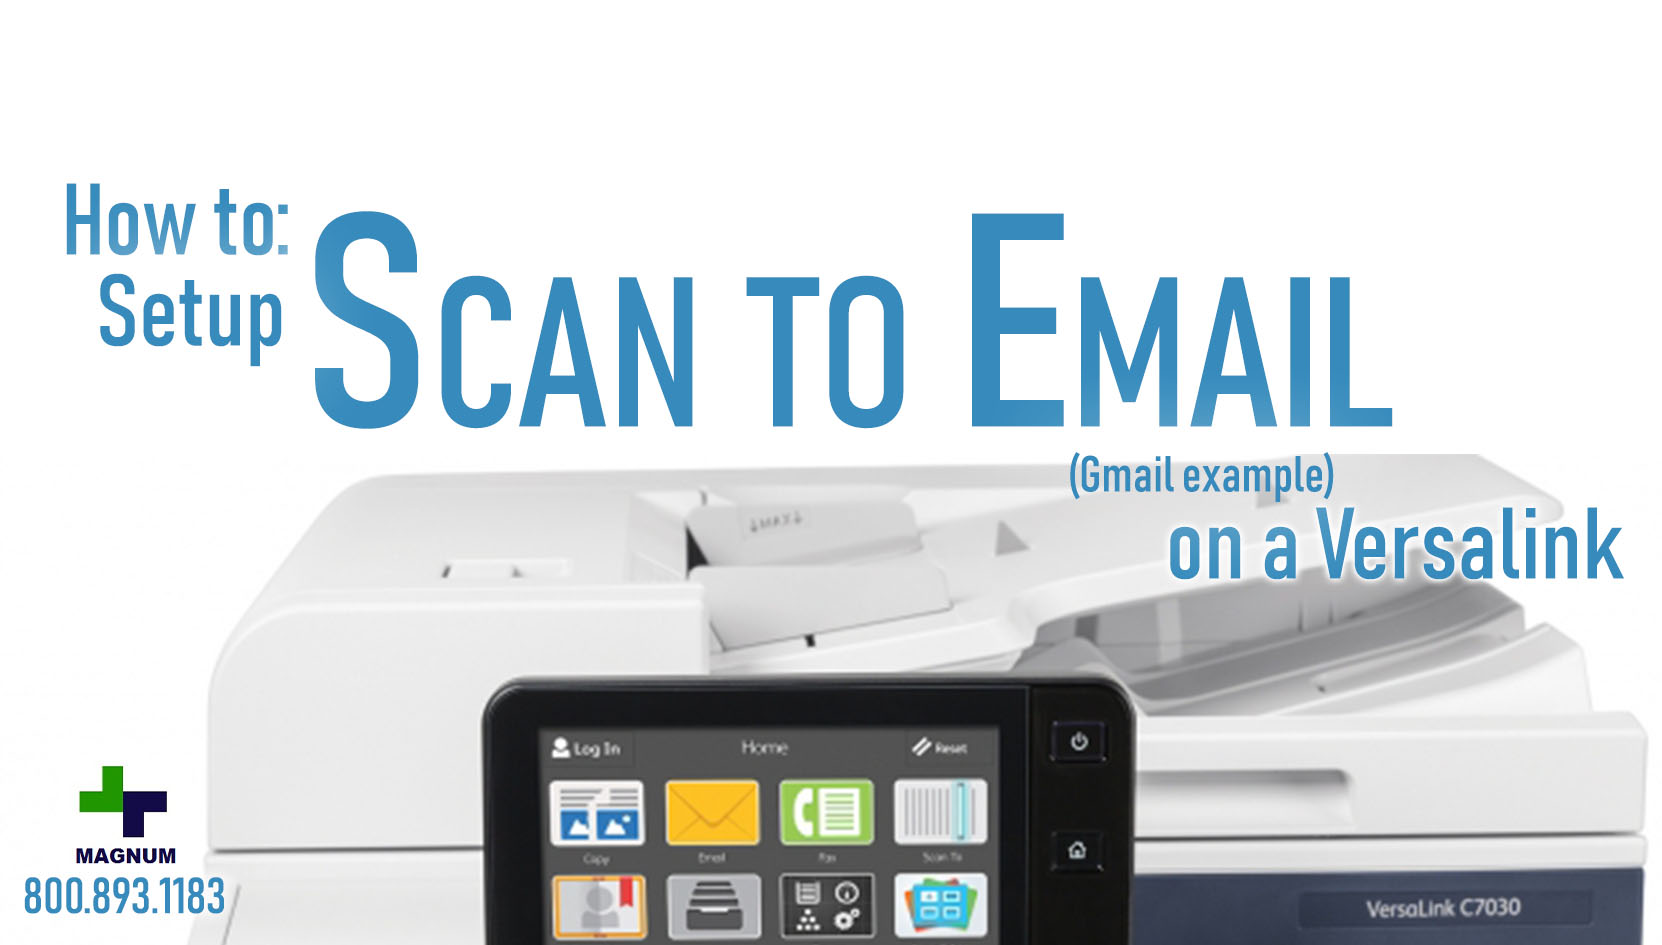 How to: Scan to Email on a Versalink